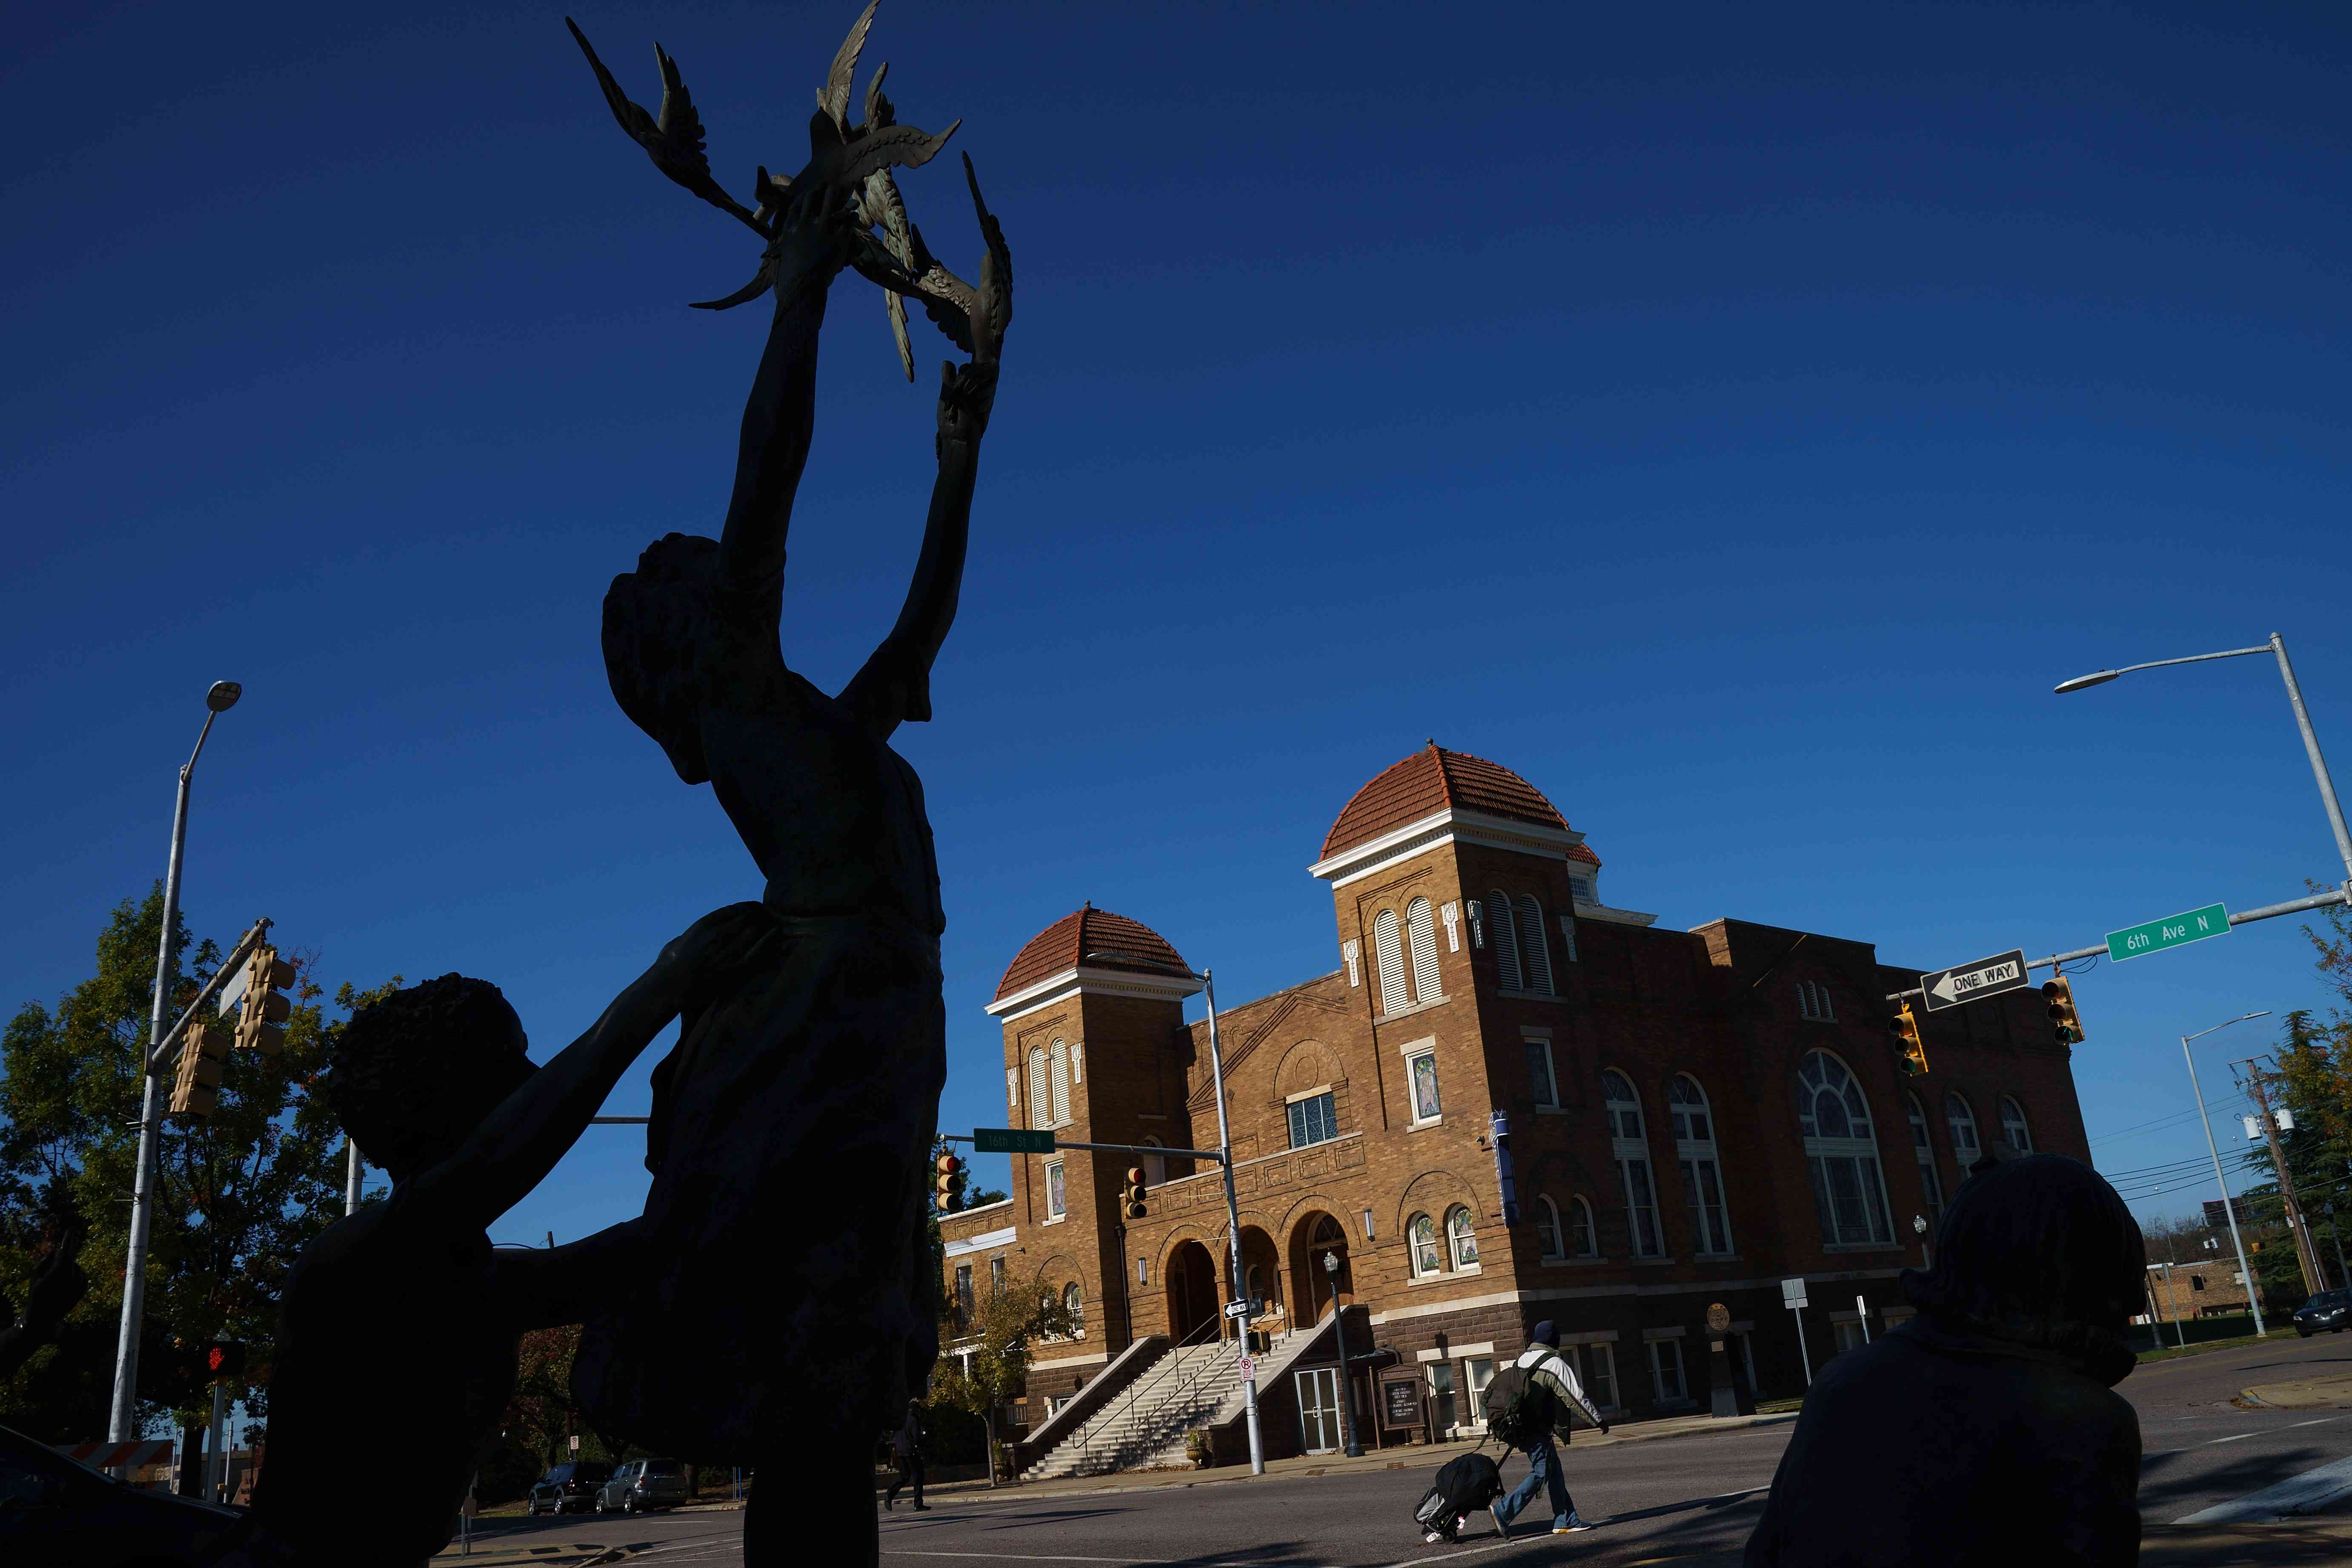 16th Street Baptist Church Bombing: History and Legacy